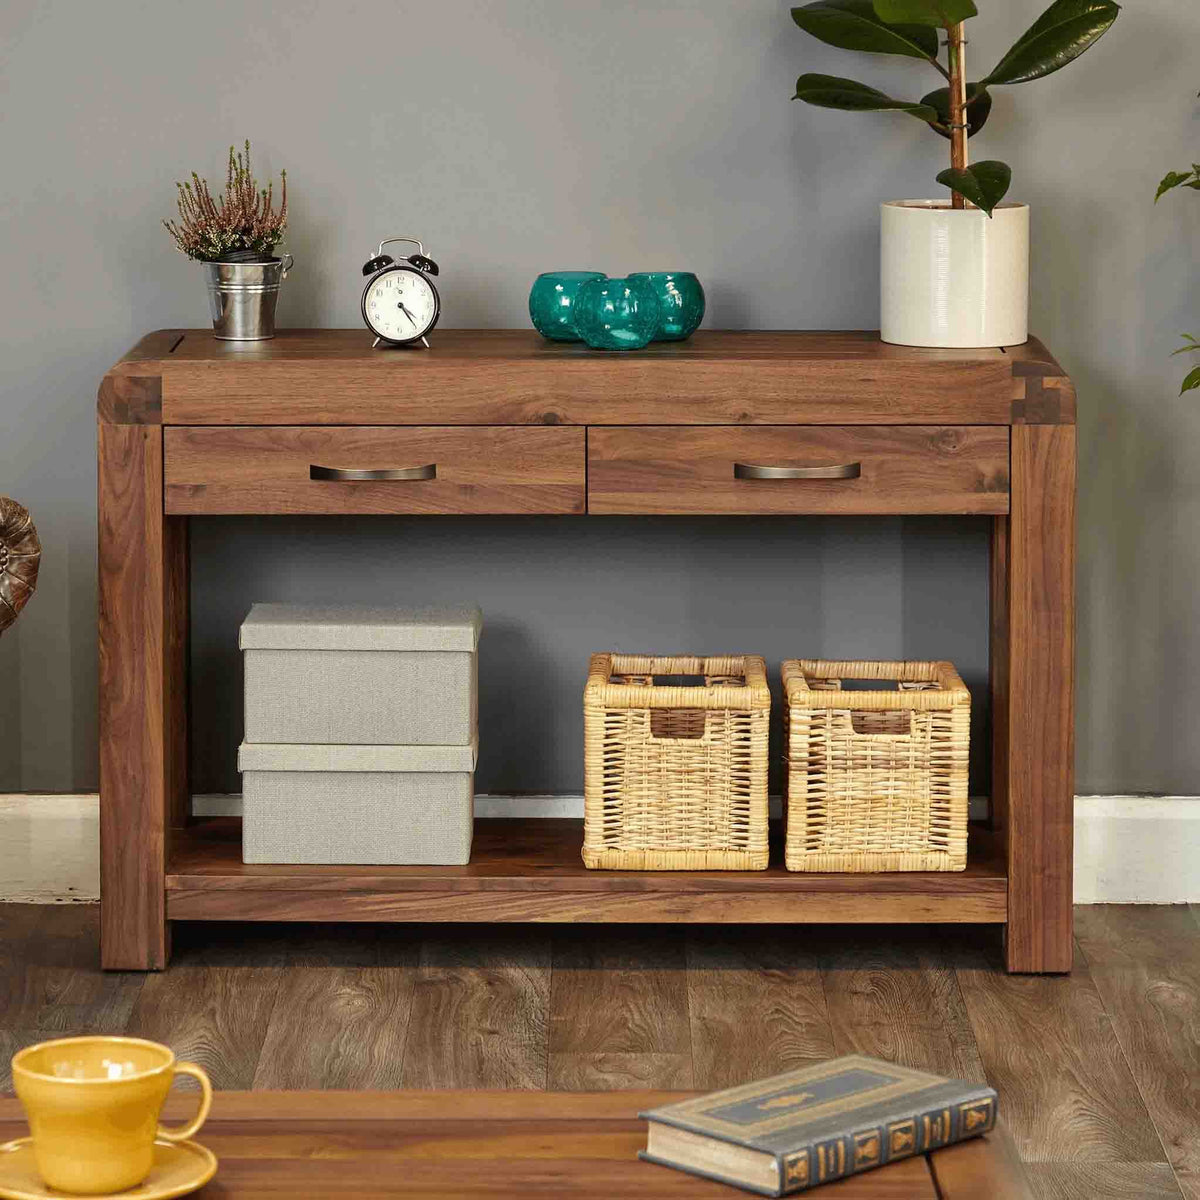 The Salem Walnut Large Wooden Hall Console Table with 2 Drawers from Roseland Furniture